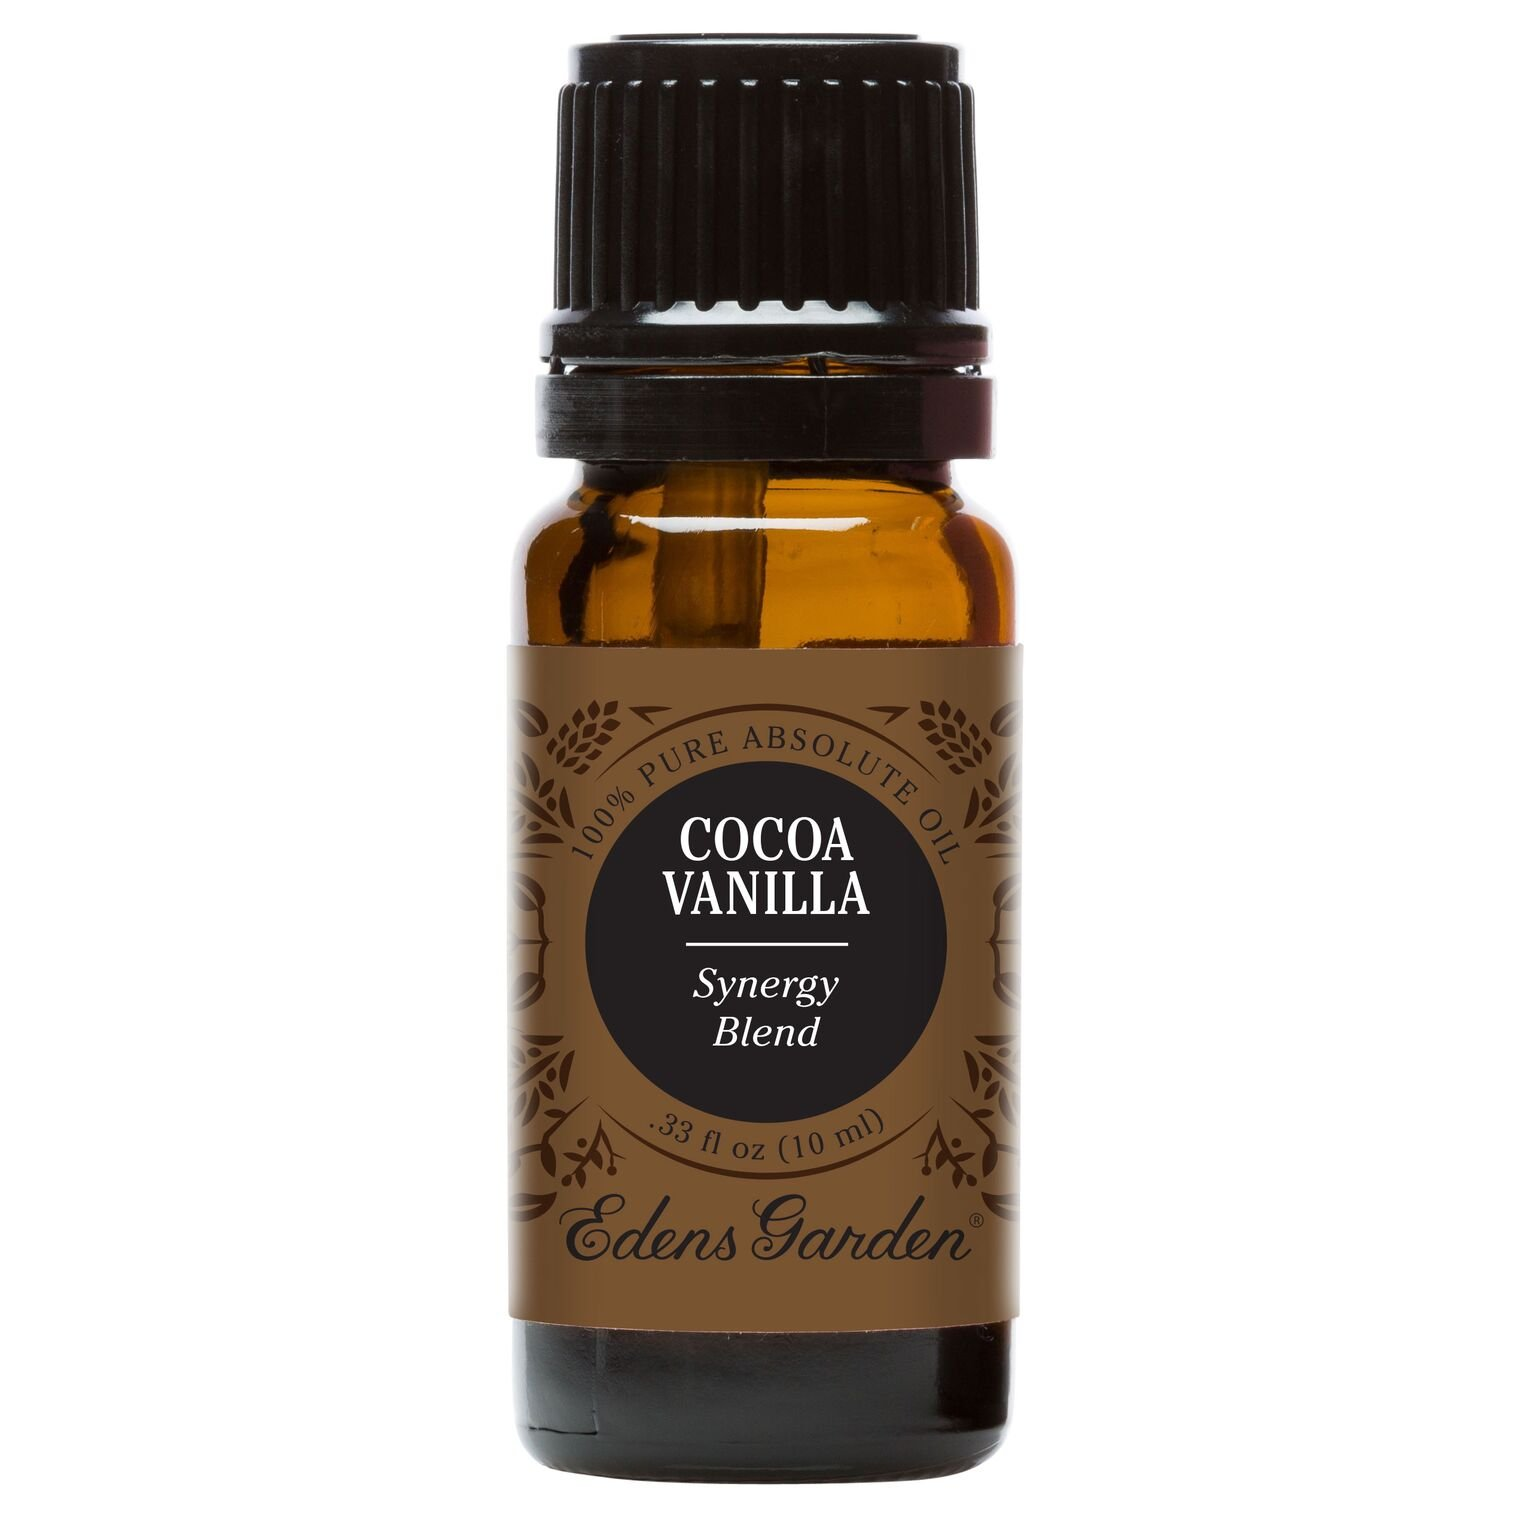 Cocoa Vanilla Synergy Blend 100% Pure Therapeutic Grade Absolute Oil by Edens Garden- 10 ml